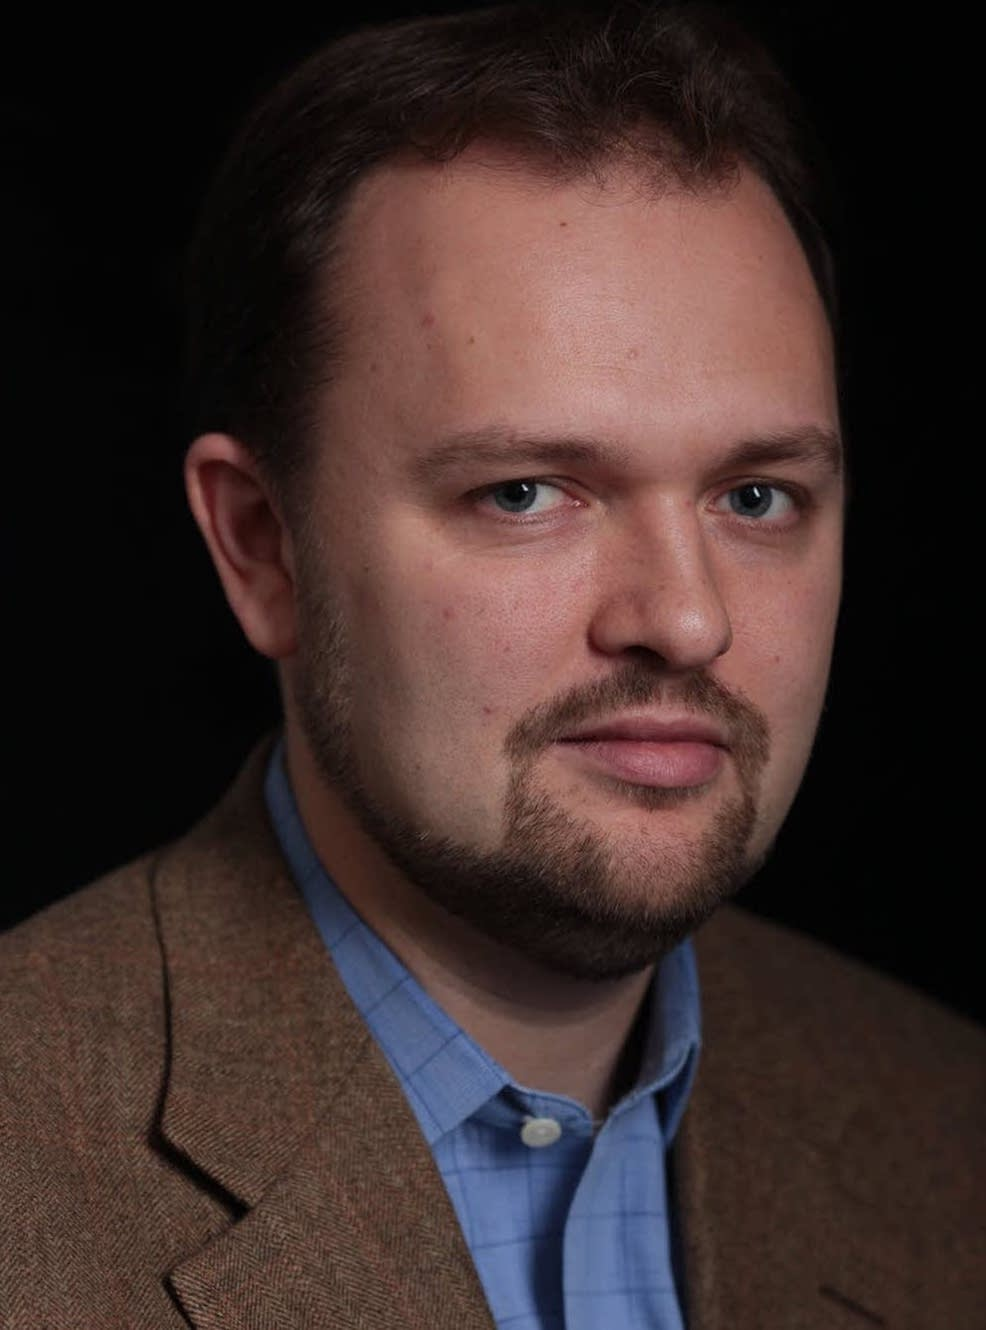 Image of Ross Douthat (The New York Times)